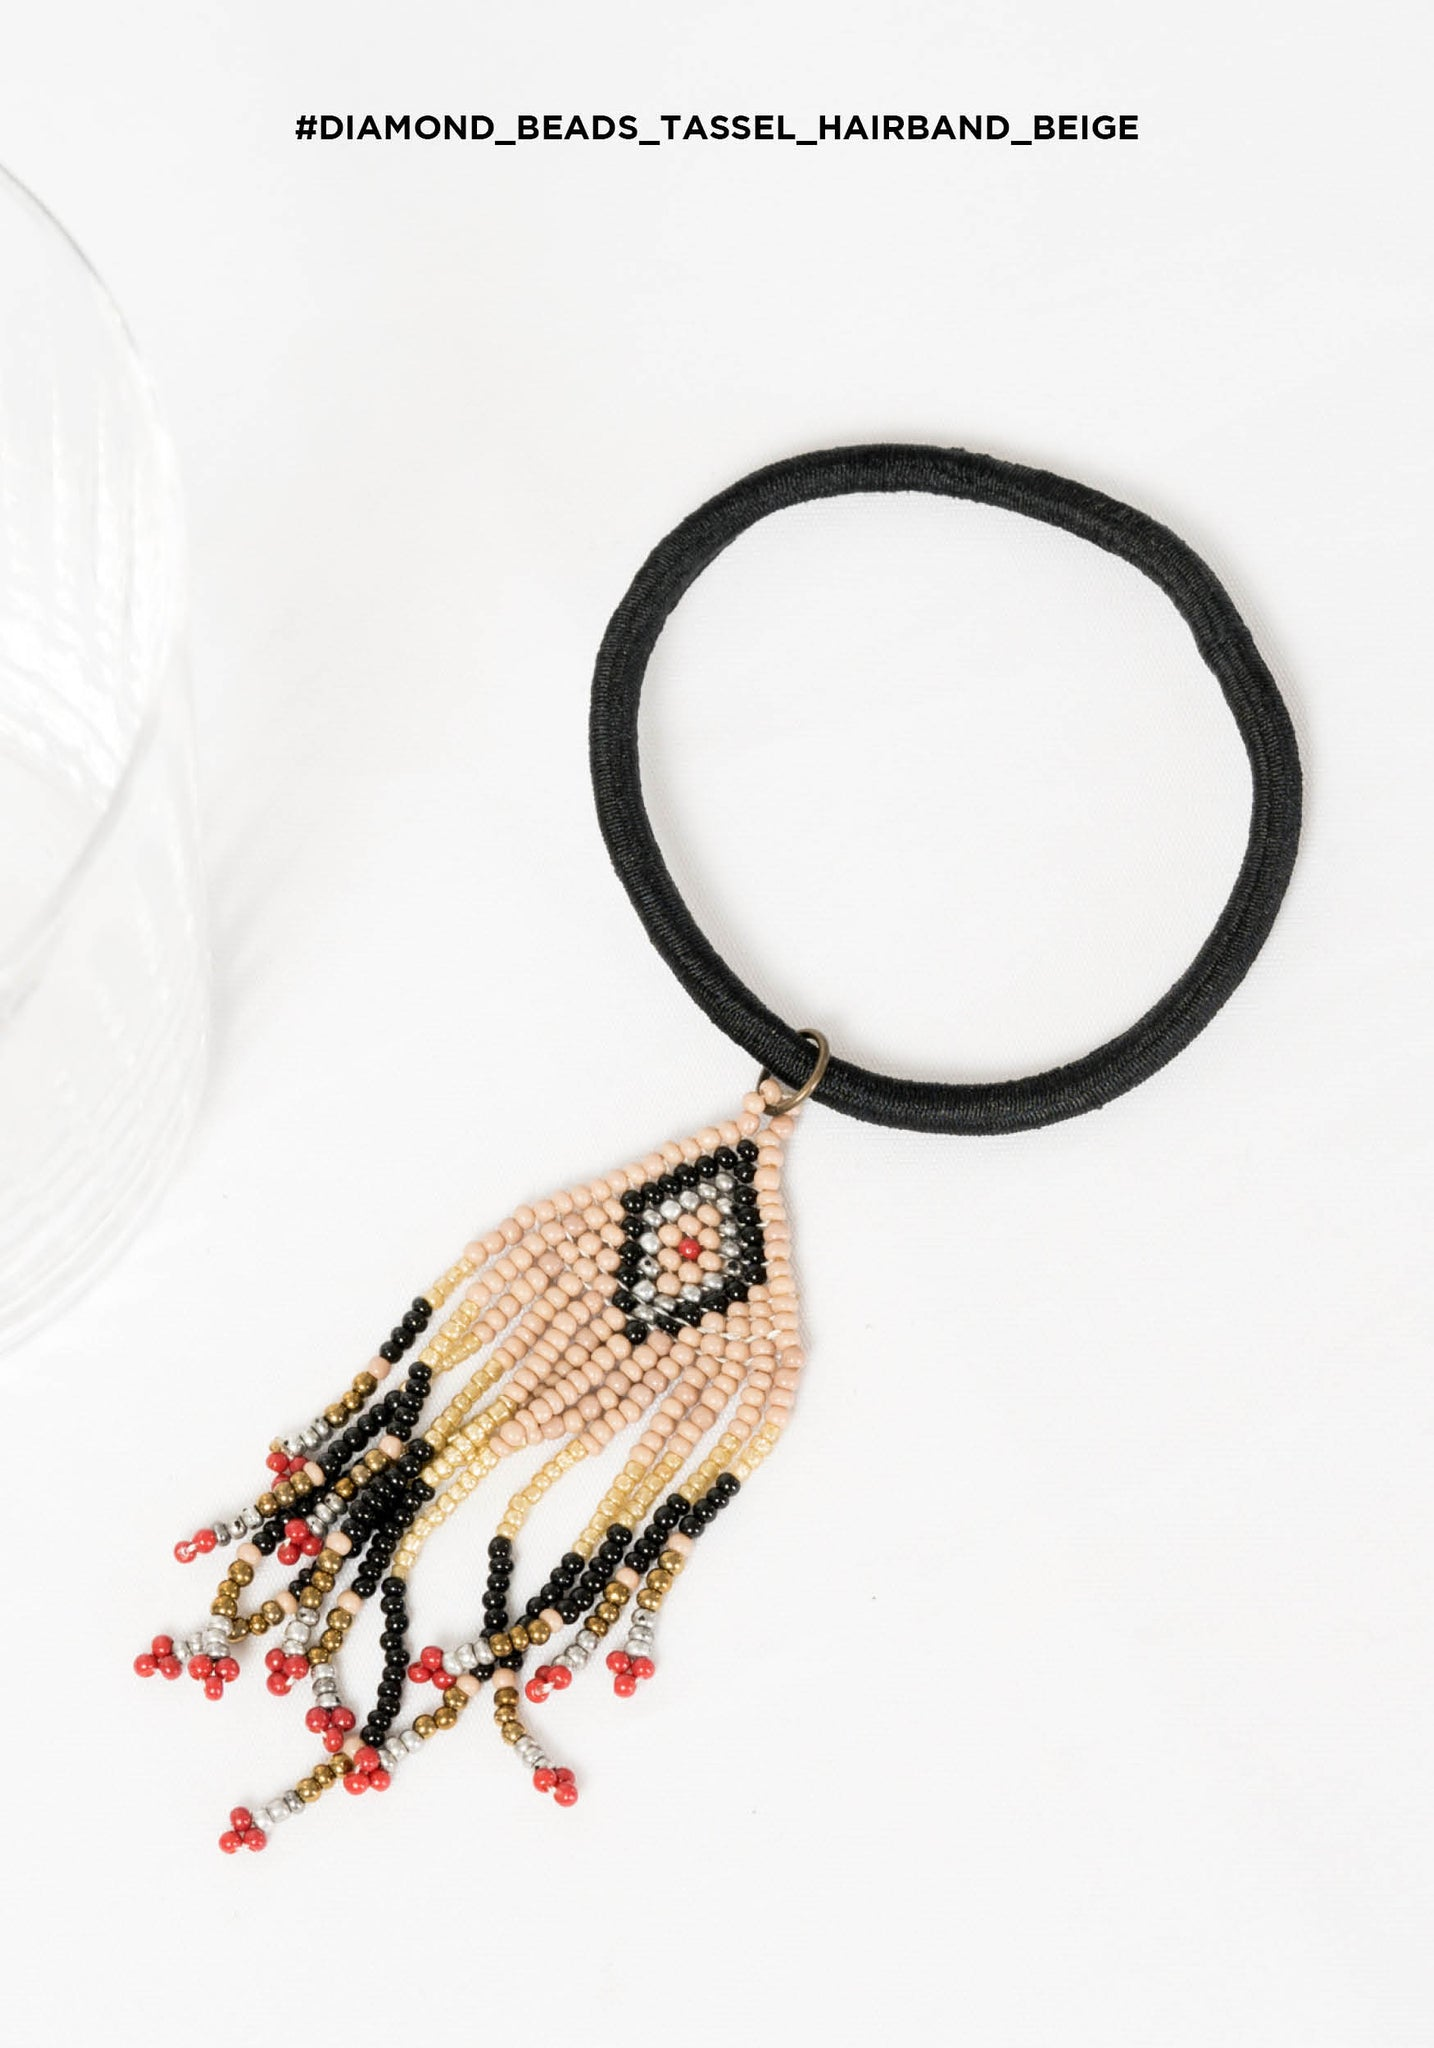 Diamond Beads Tassel Hairband Beige - whoami